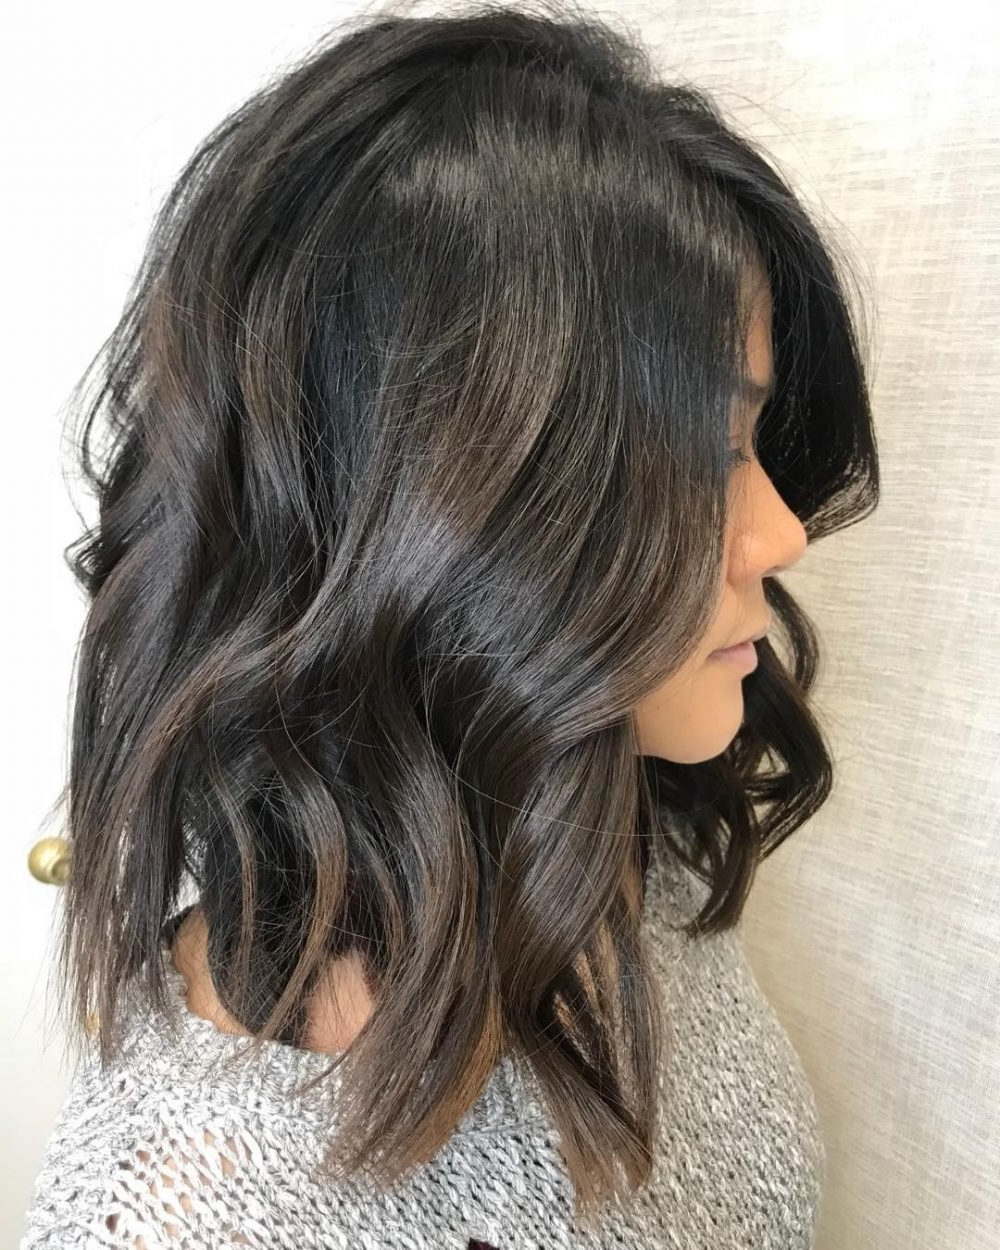 40 Cute Medium Bob Hairstyles For Shoulder Length Hair Pertaining To Latest Layered And Textured Bob Hairstyles (View 7 of 20)